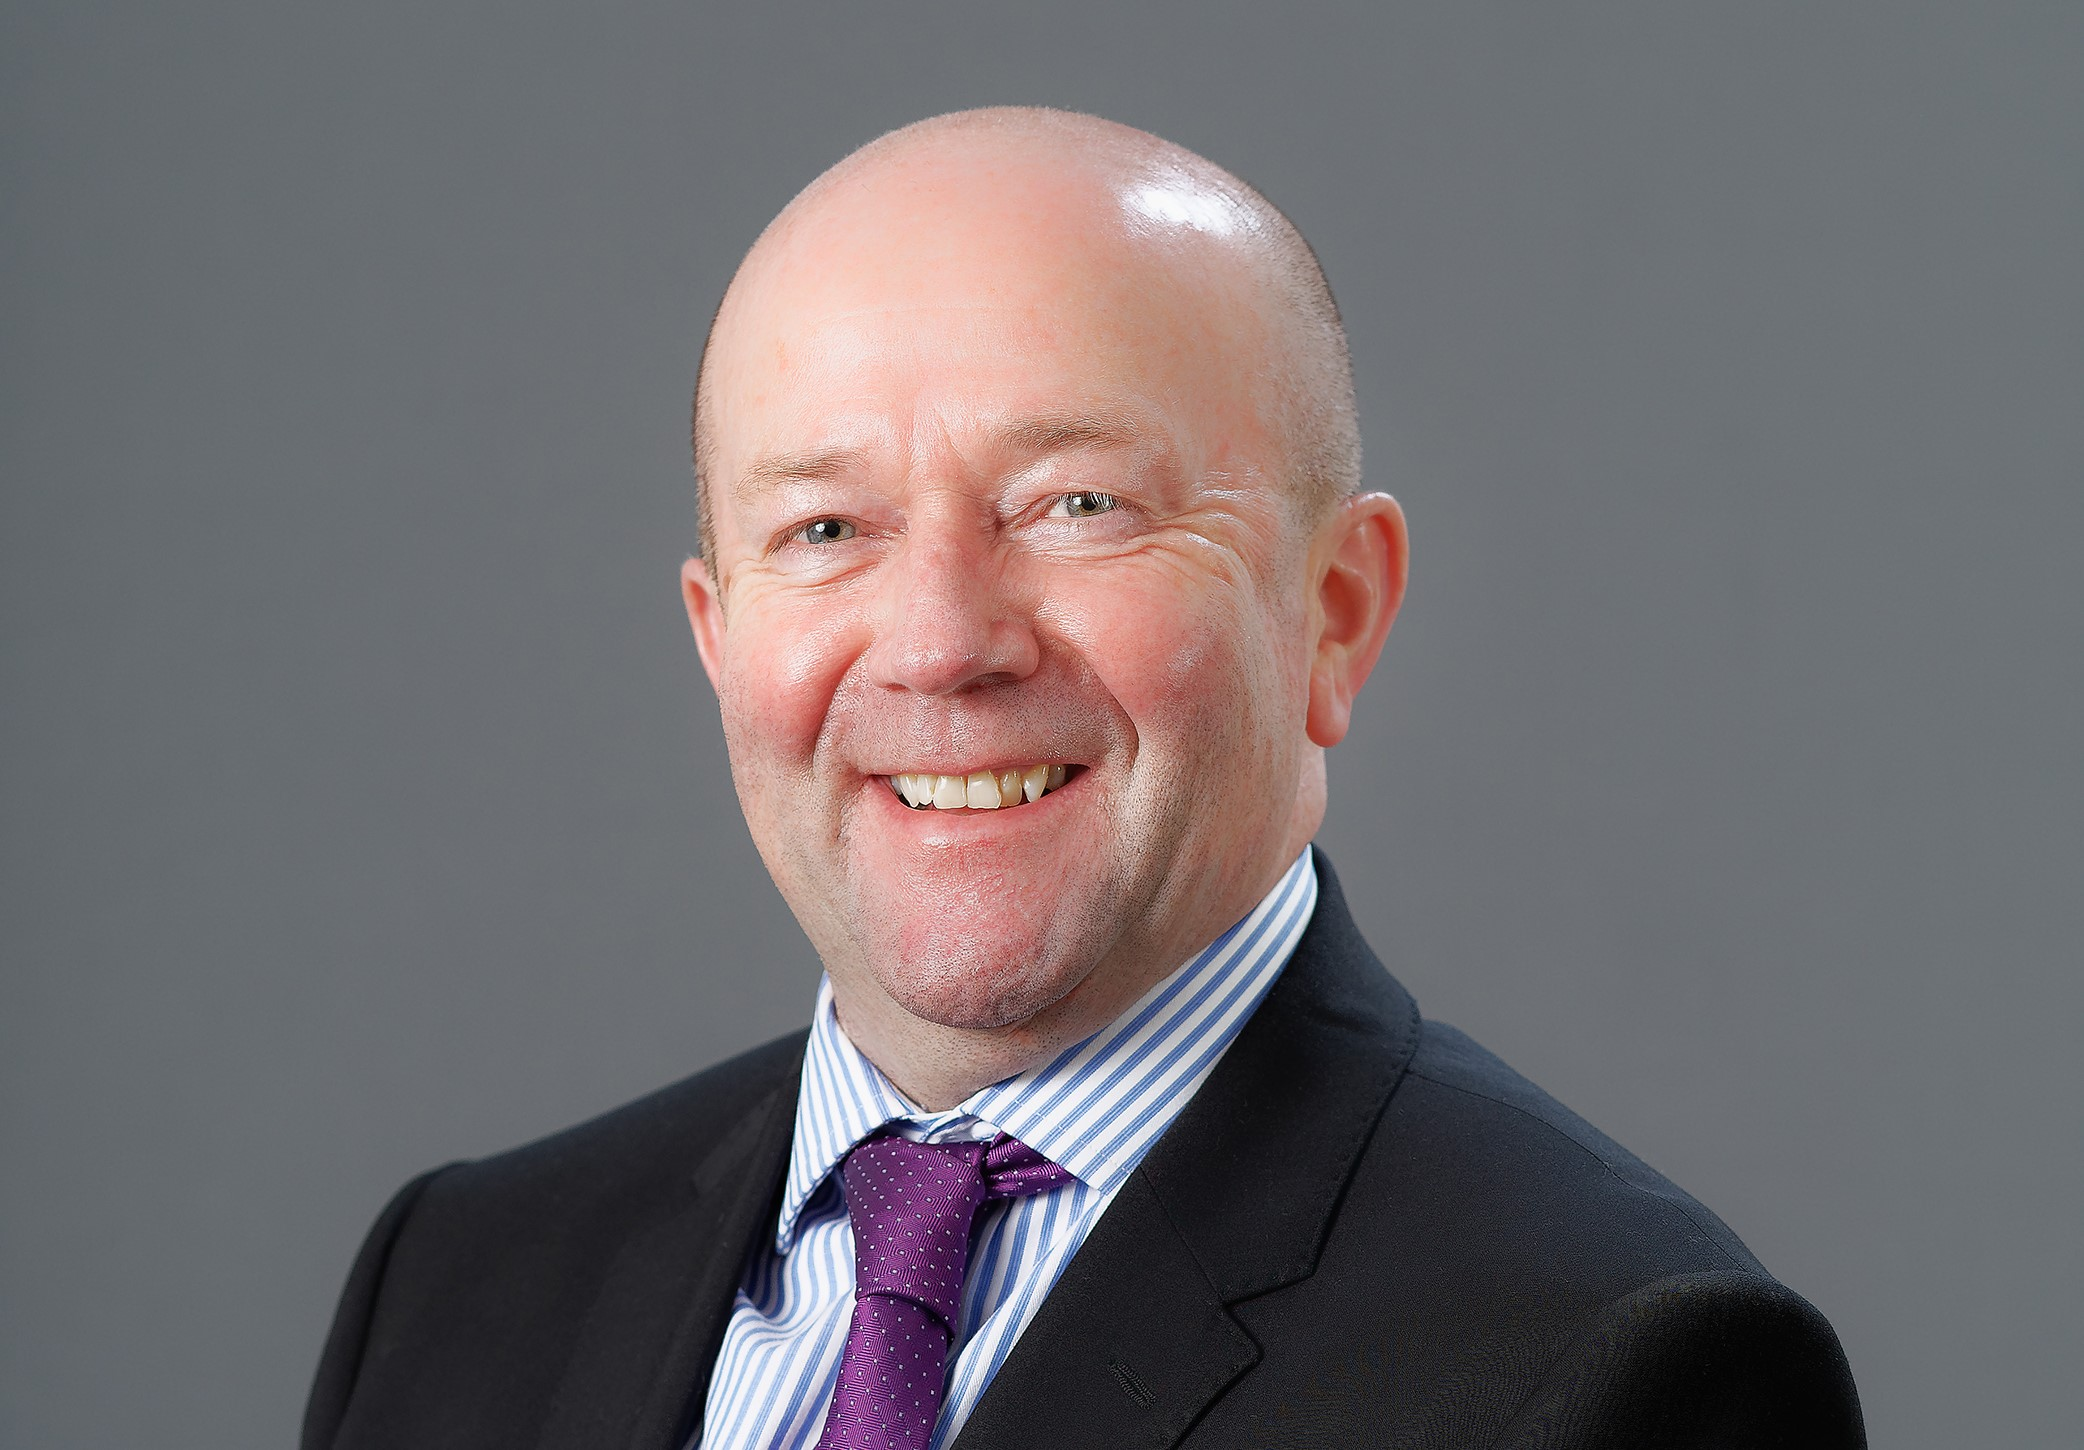 Peter Perry shares his journey from apprentice to CEO at one of Wales' largest organisations